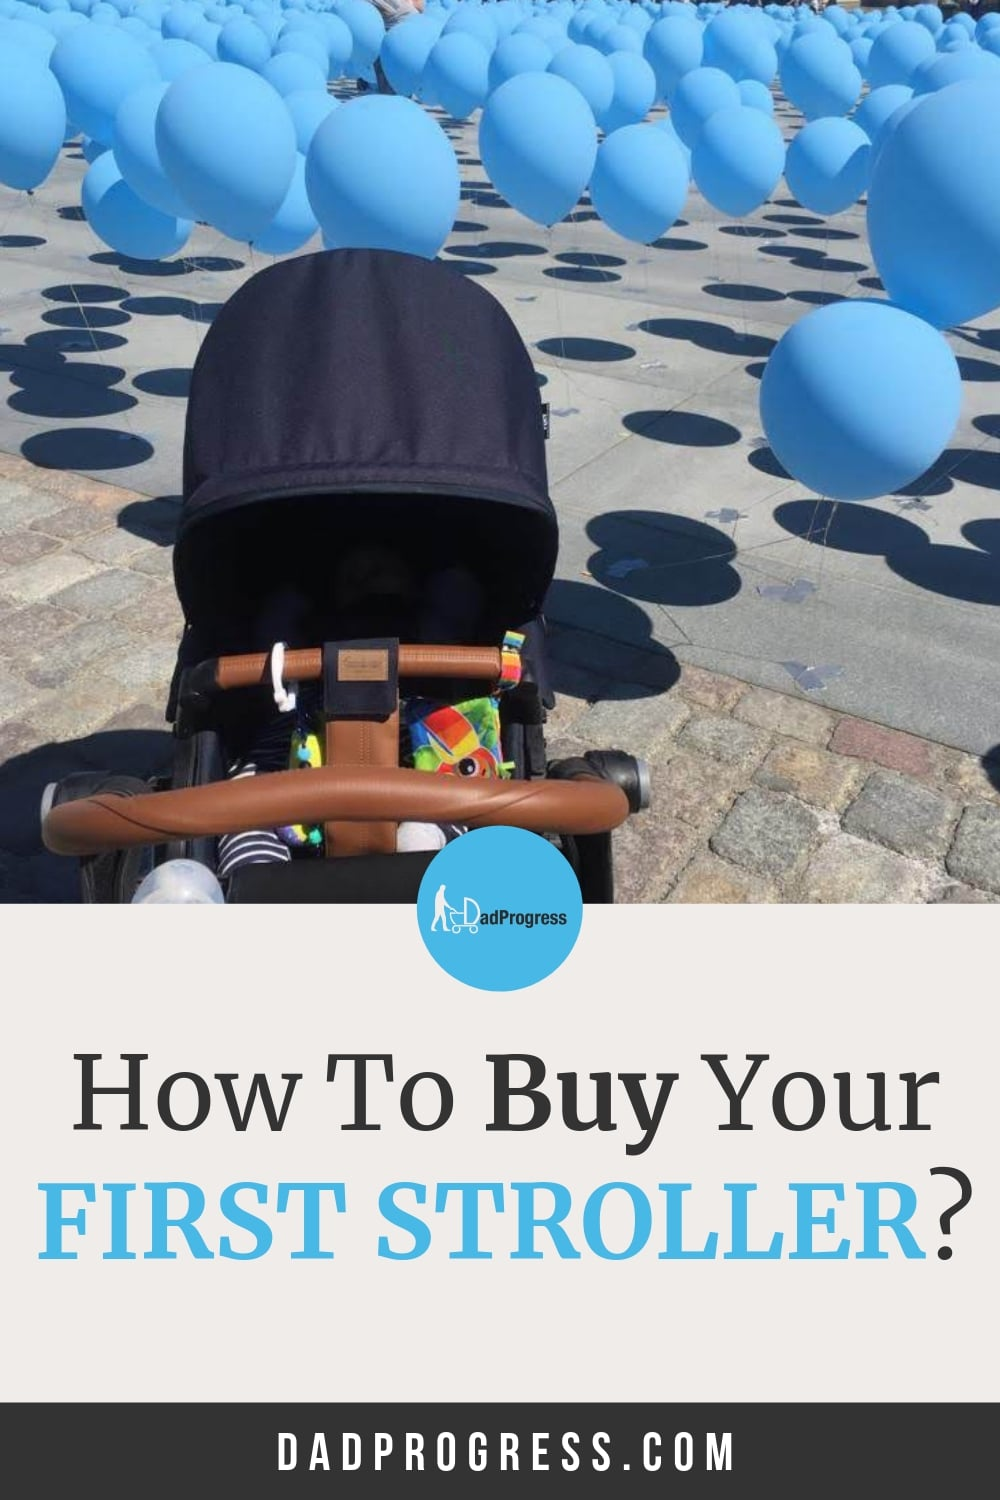 If you're a new parent looking to buy your first stroller for your baby, then my complete buying guide is for you. My kid is over one year old, and after two years of writing about strollers and buying three, I can help you out. Click to learn more